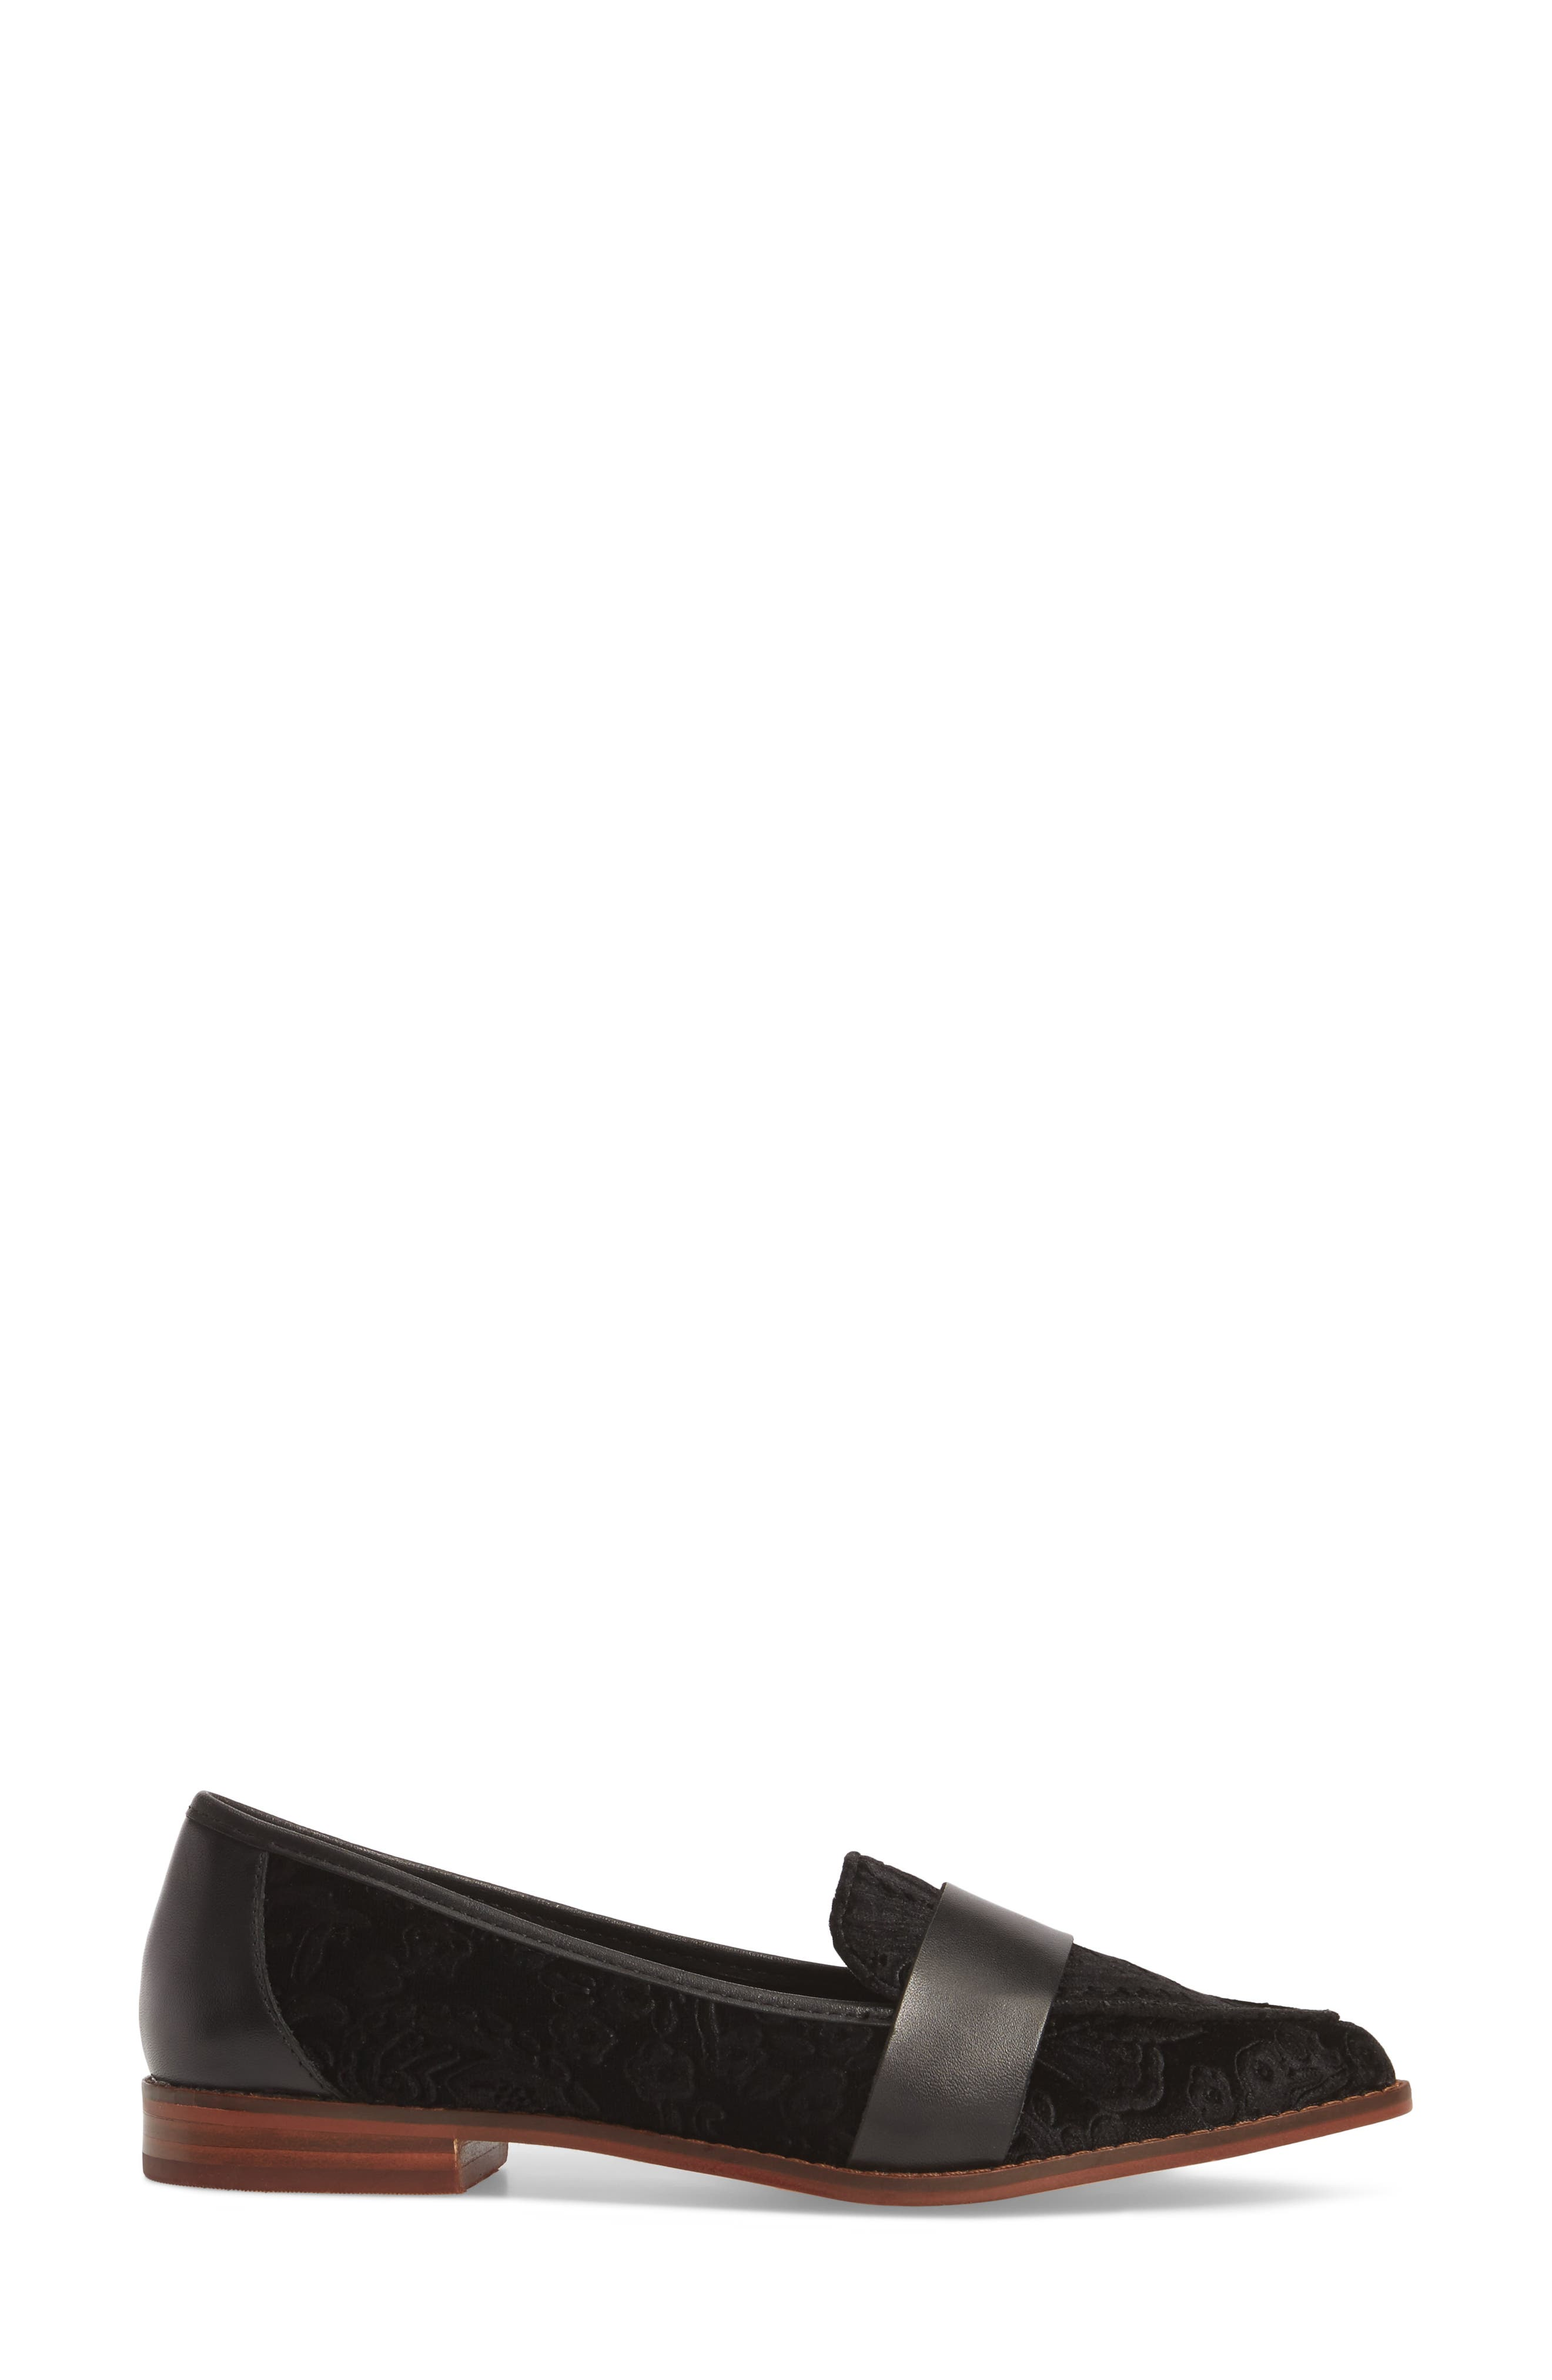 Alternate Image 3  - Sole Society Edie Pointy Toe Loafer (Women)